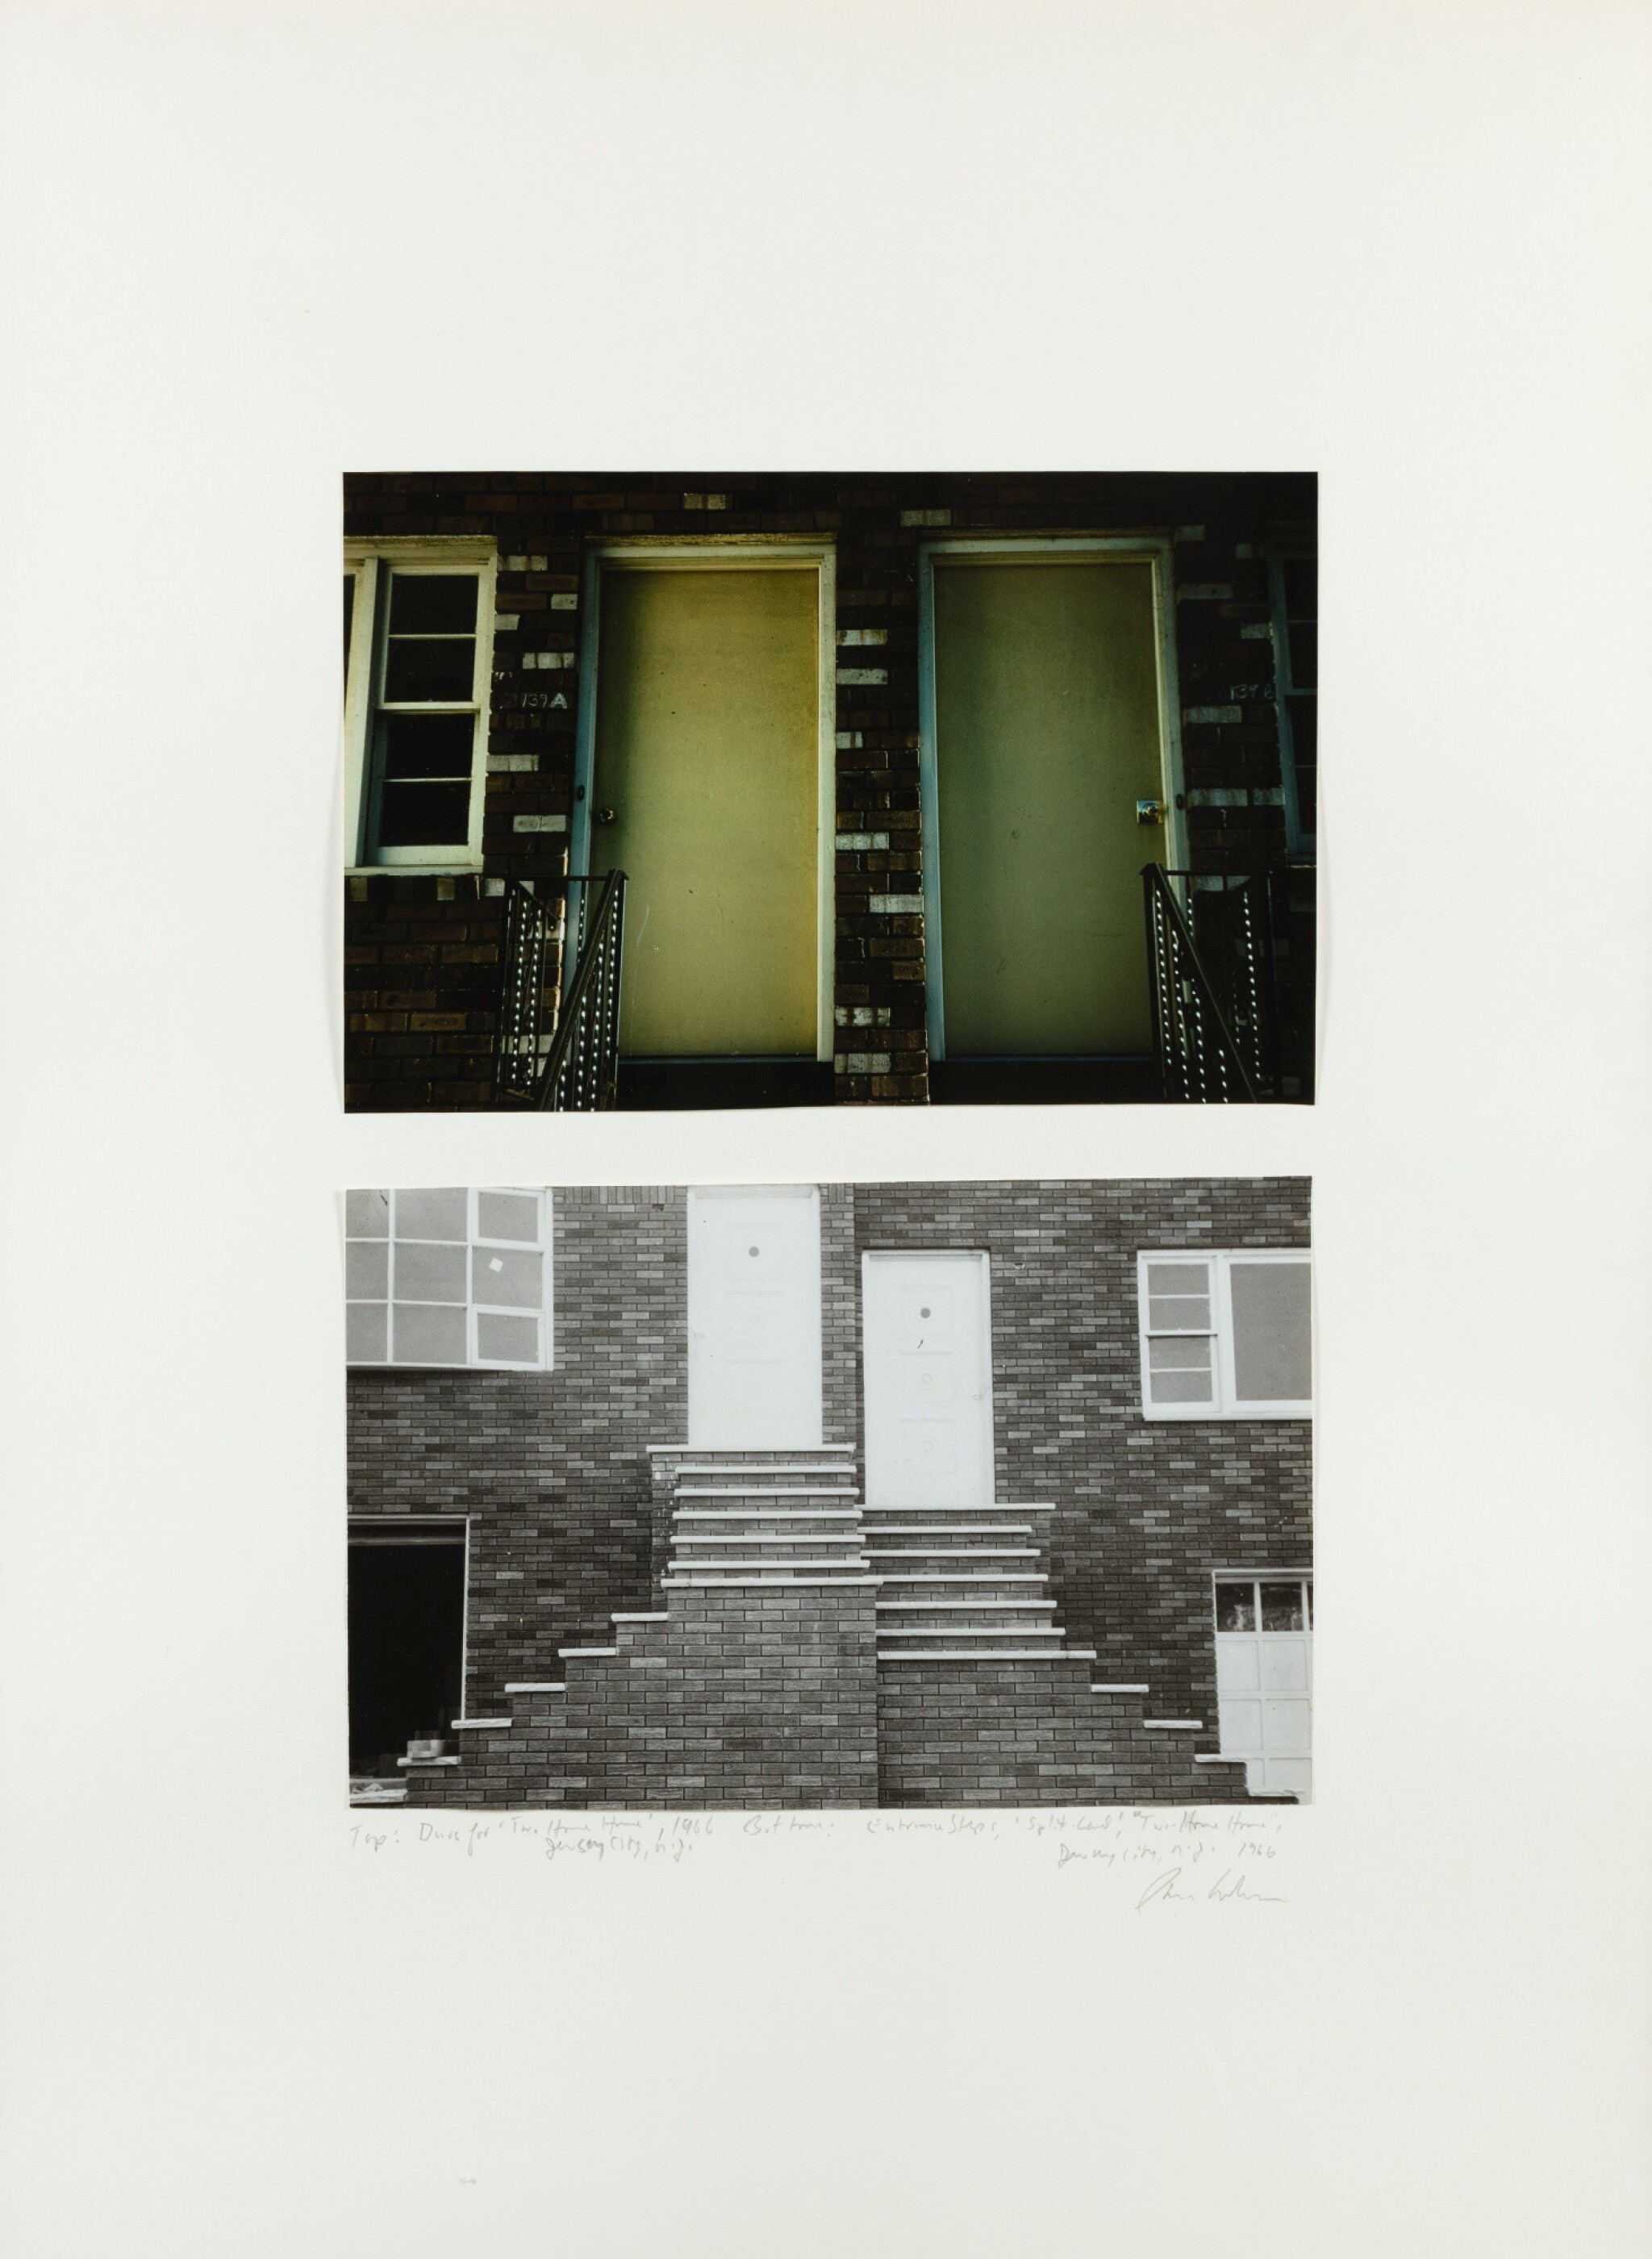 View 1 of Lot 67. DAN GRAHAM | DOORS, 'TWO HOME HOUSE', JERSEY CITY, NEW JERSEY, 1966;  ENTRANCE STEPS, SPLIT LEVEL, 'TWO HOME HOUSE', JERSEY CITY, NEW JERSEY, 1966.